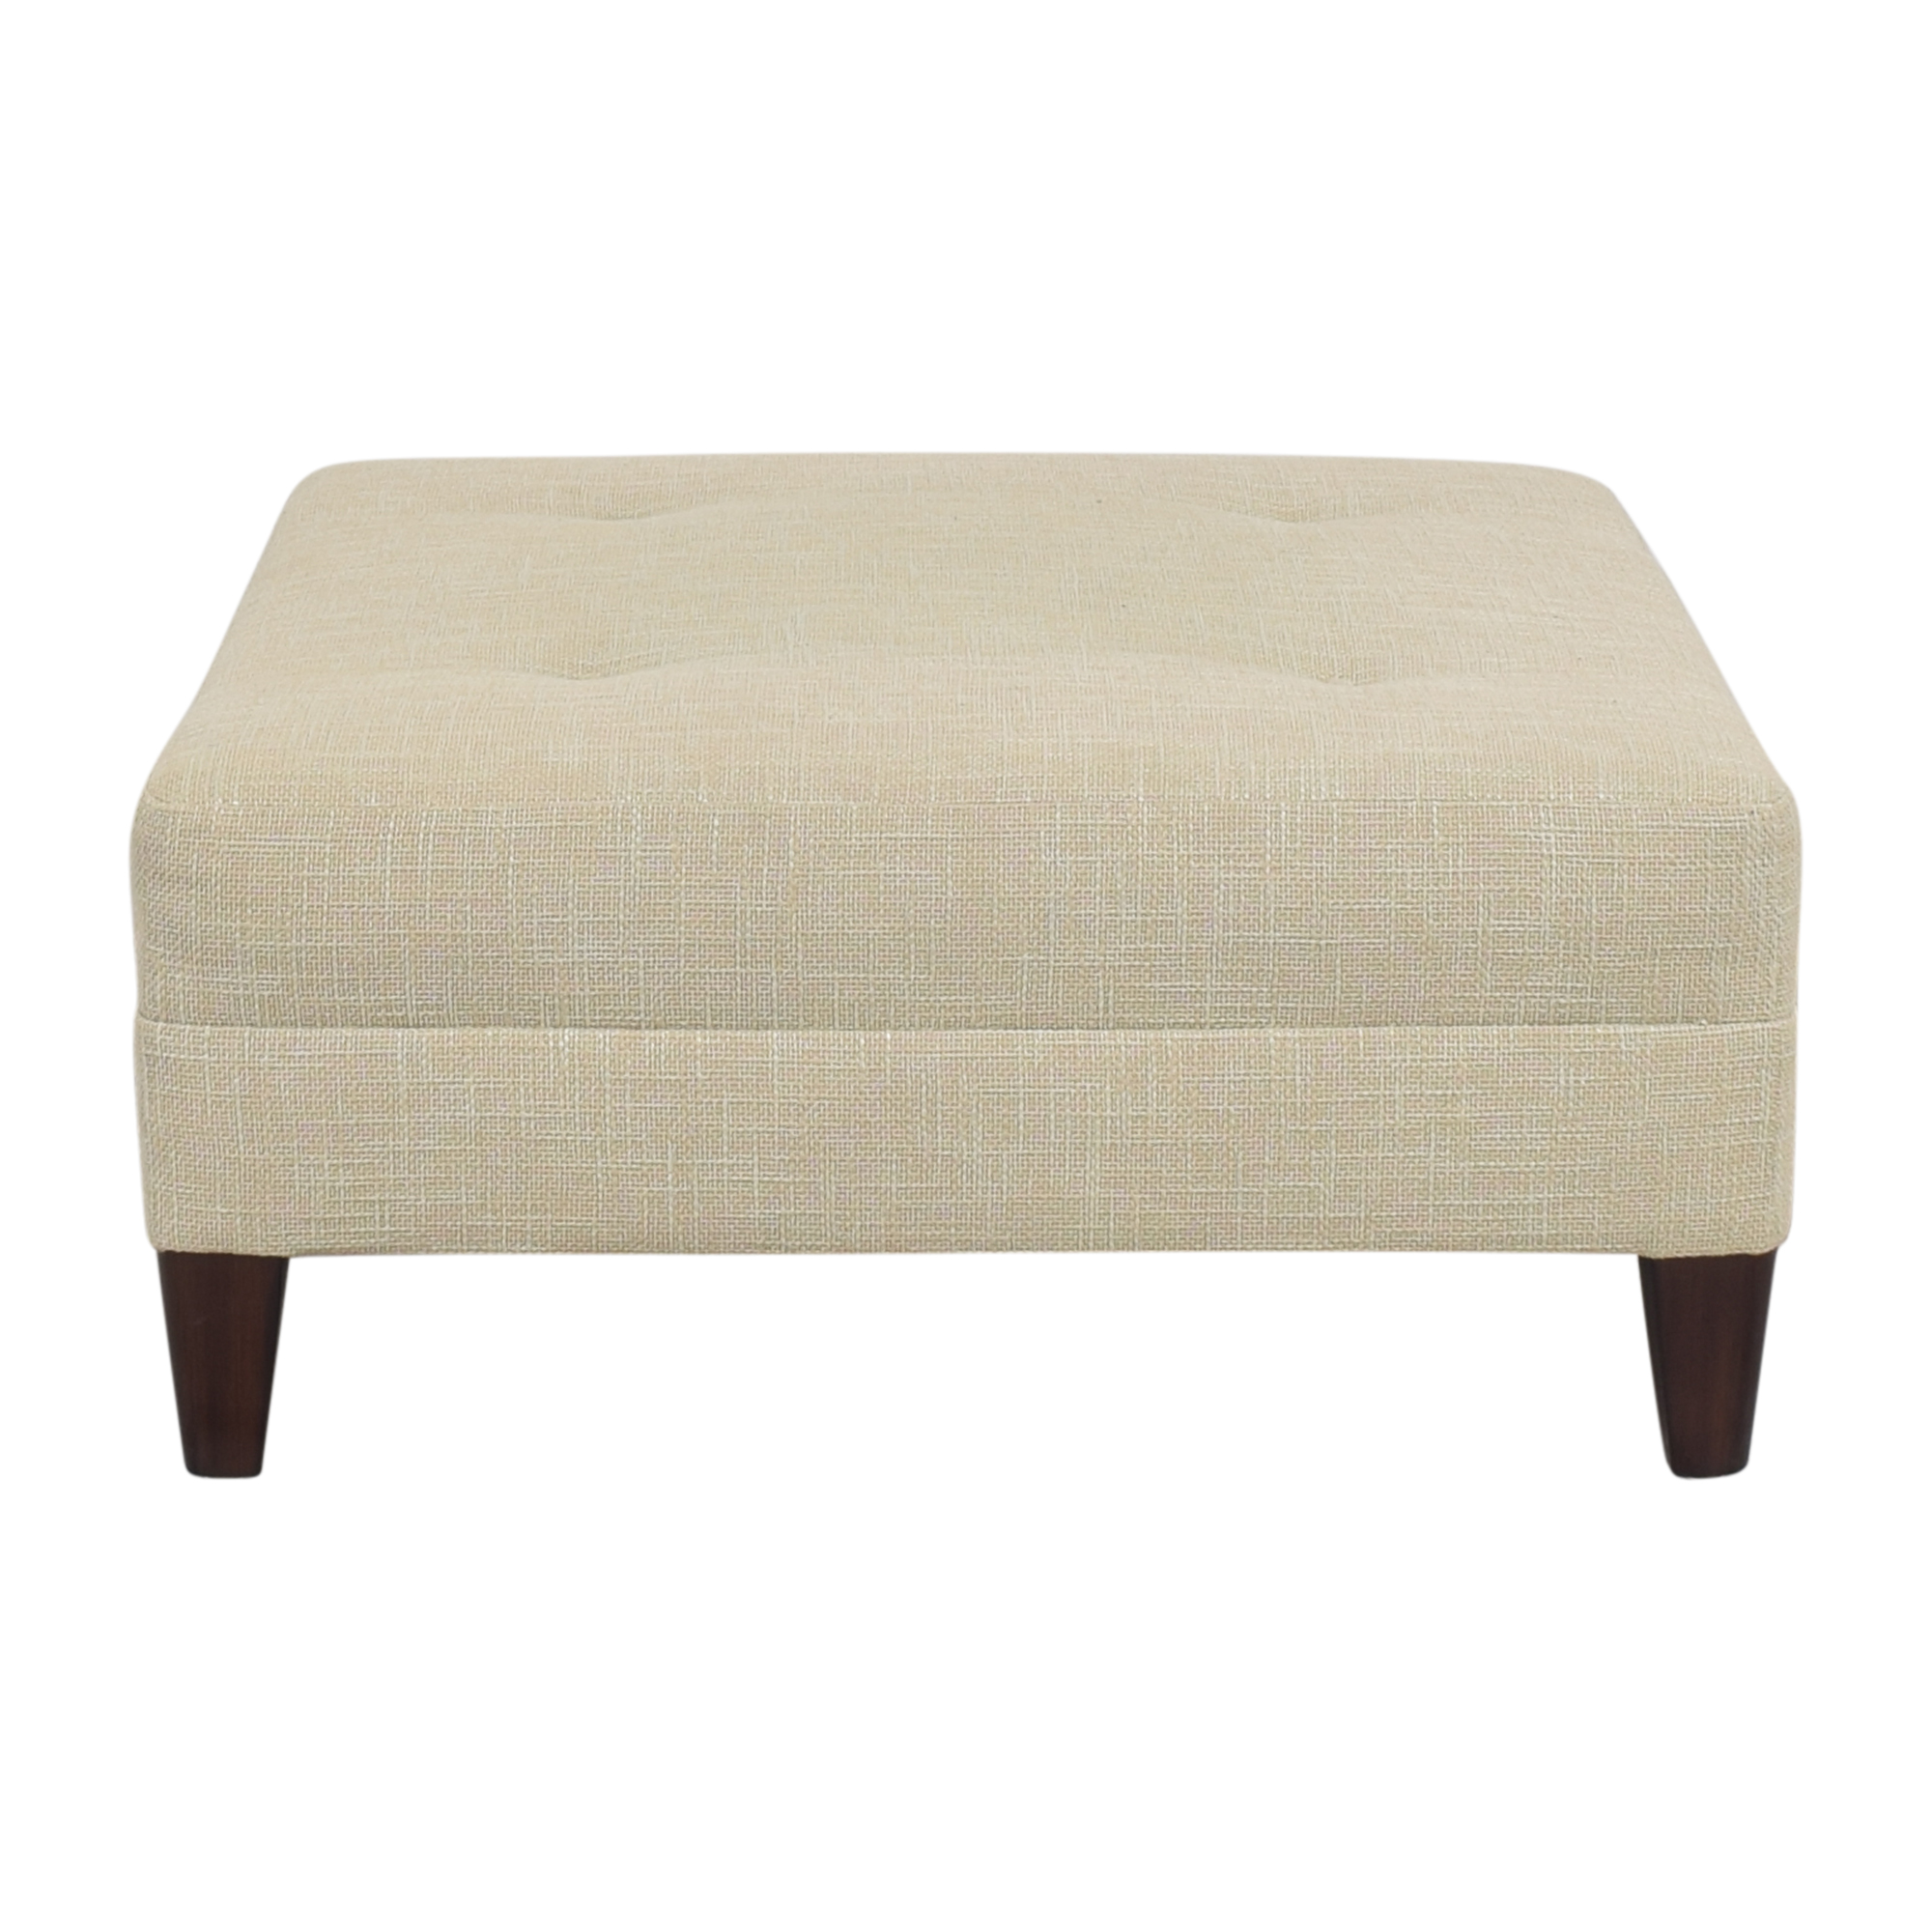 Custom Square Tufted Ottoman discount